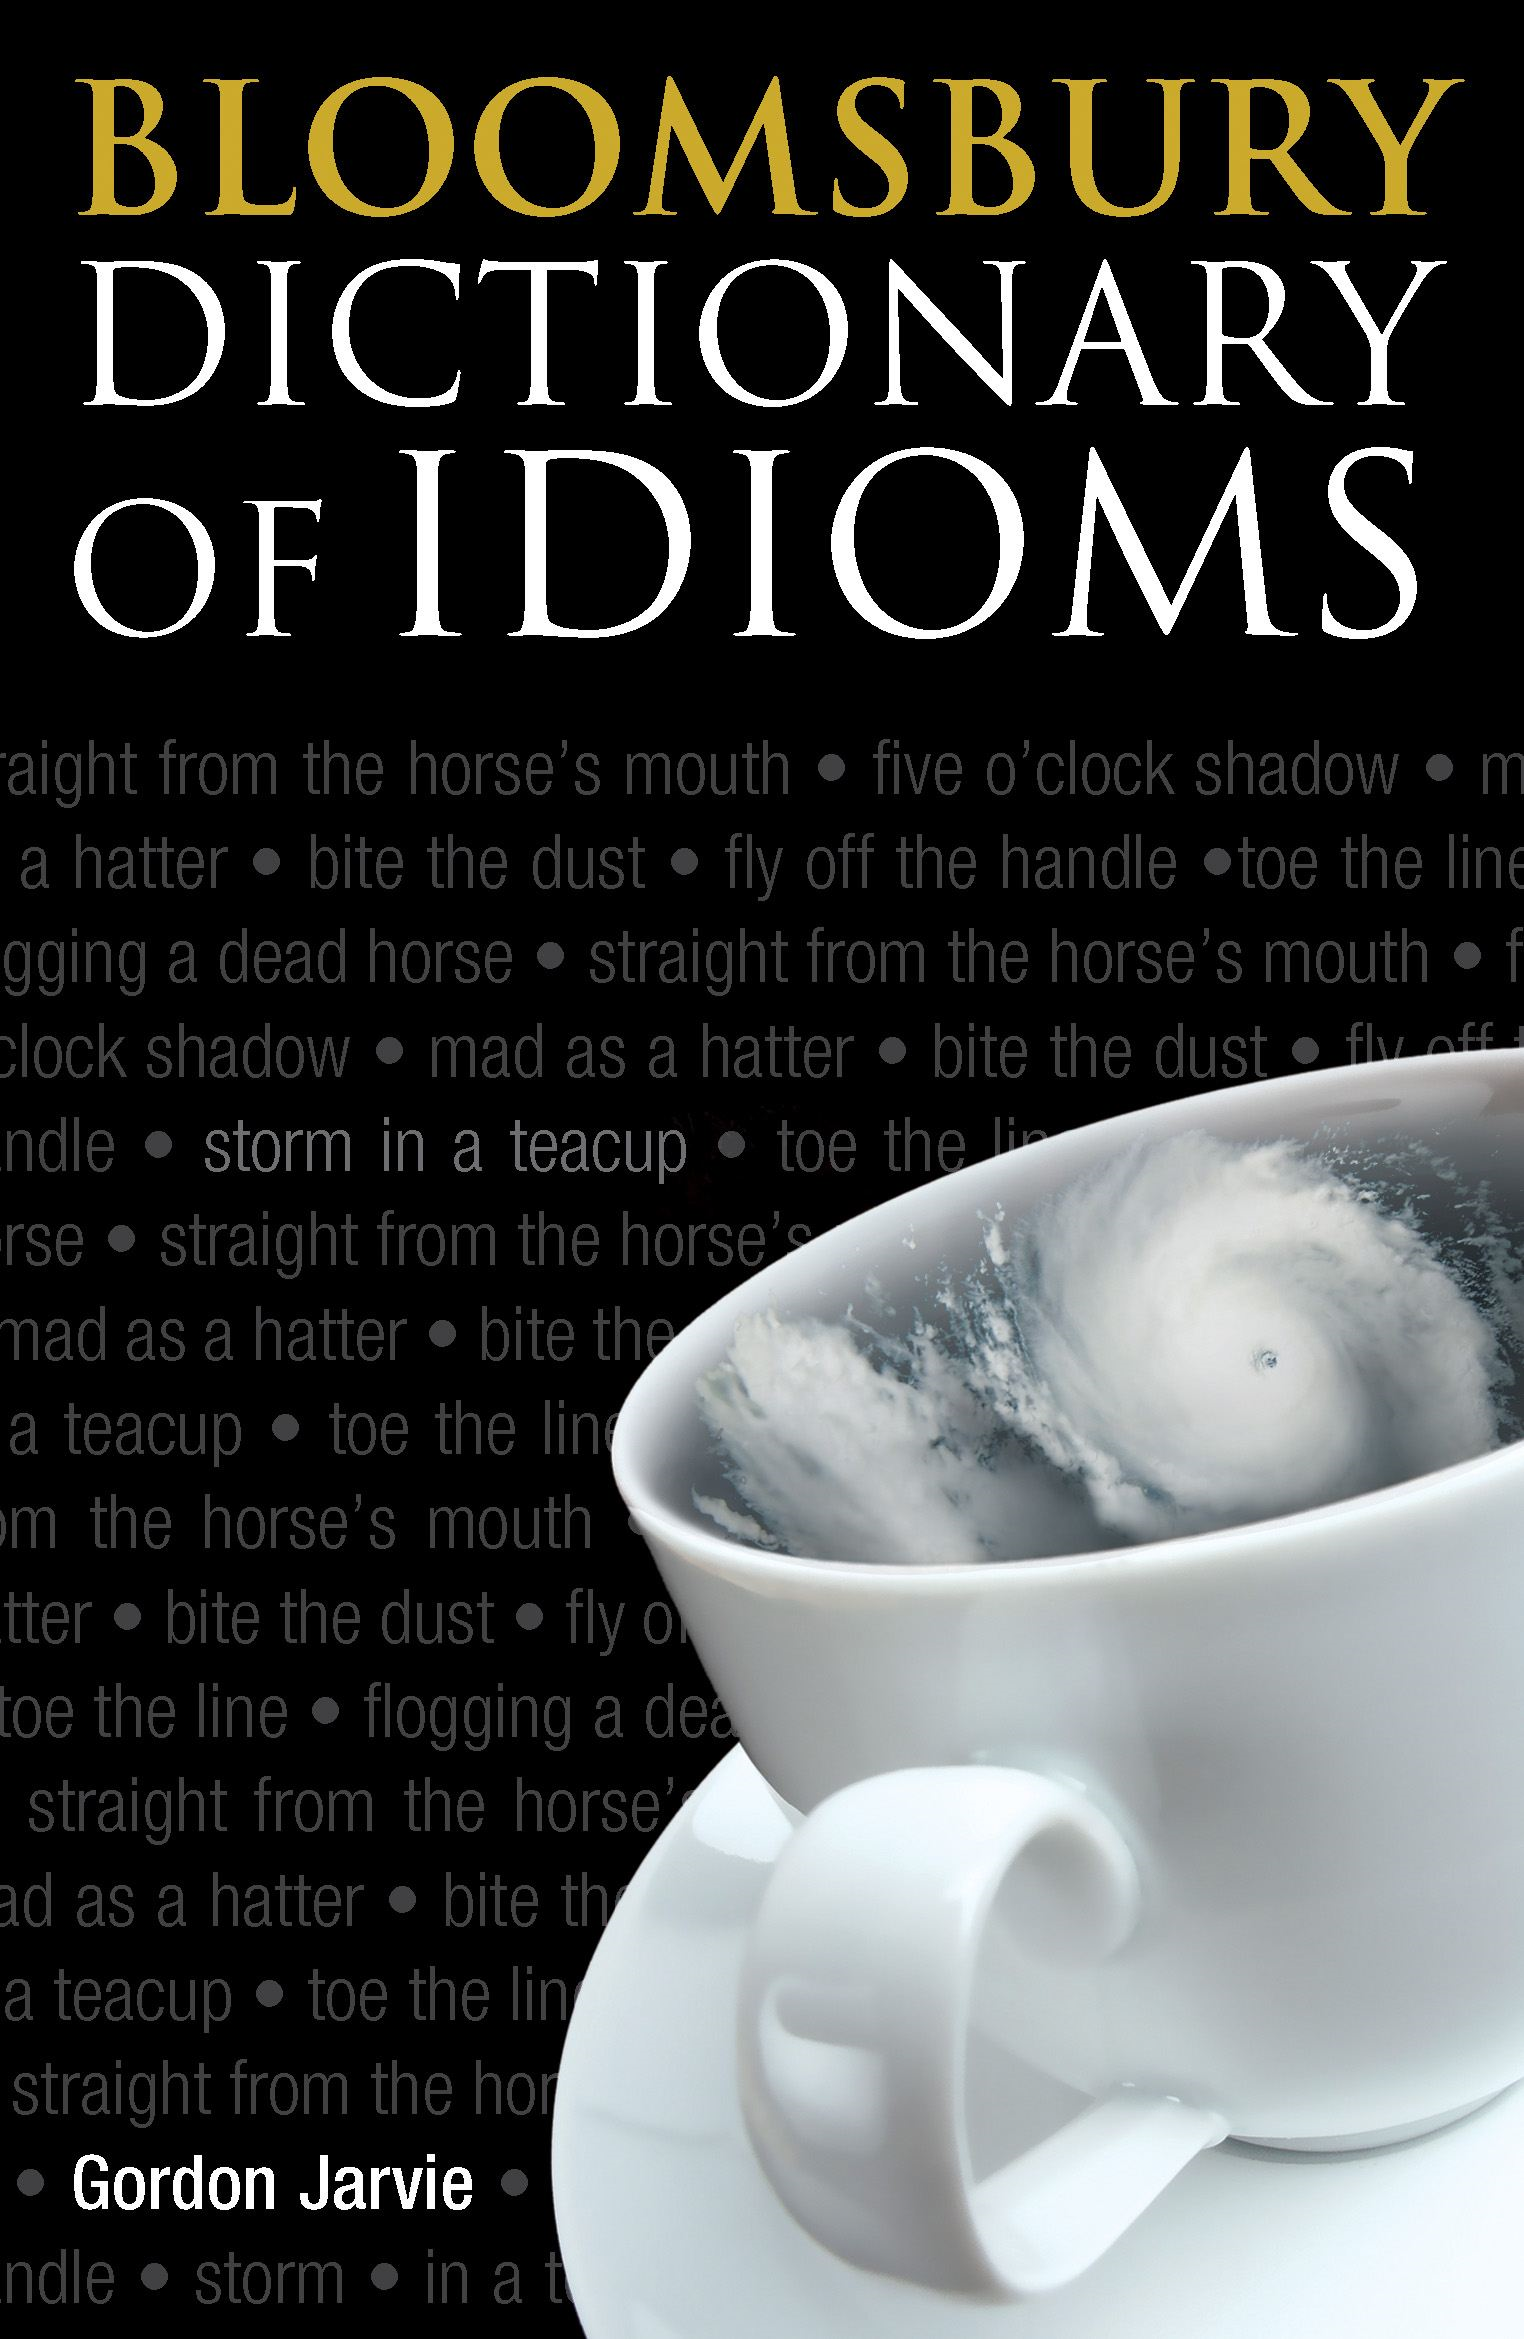 Bloomsbury Dictionary of Idioms